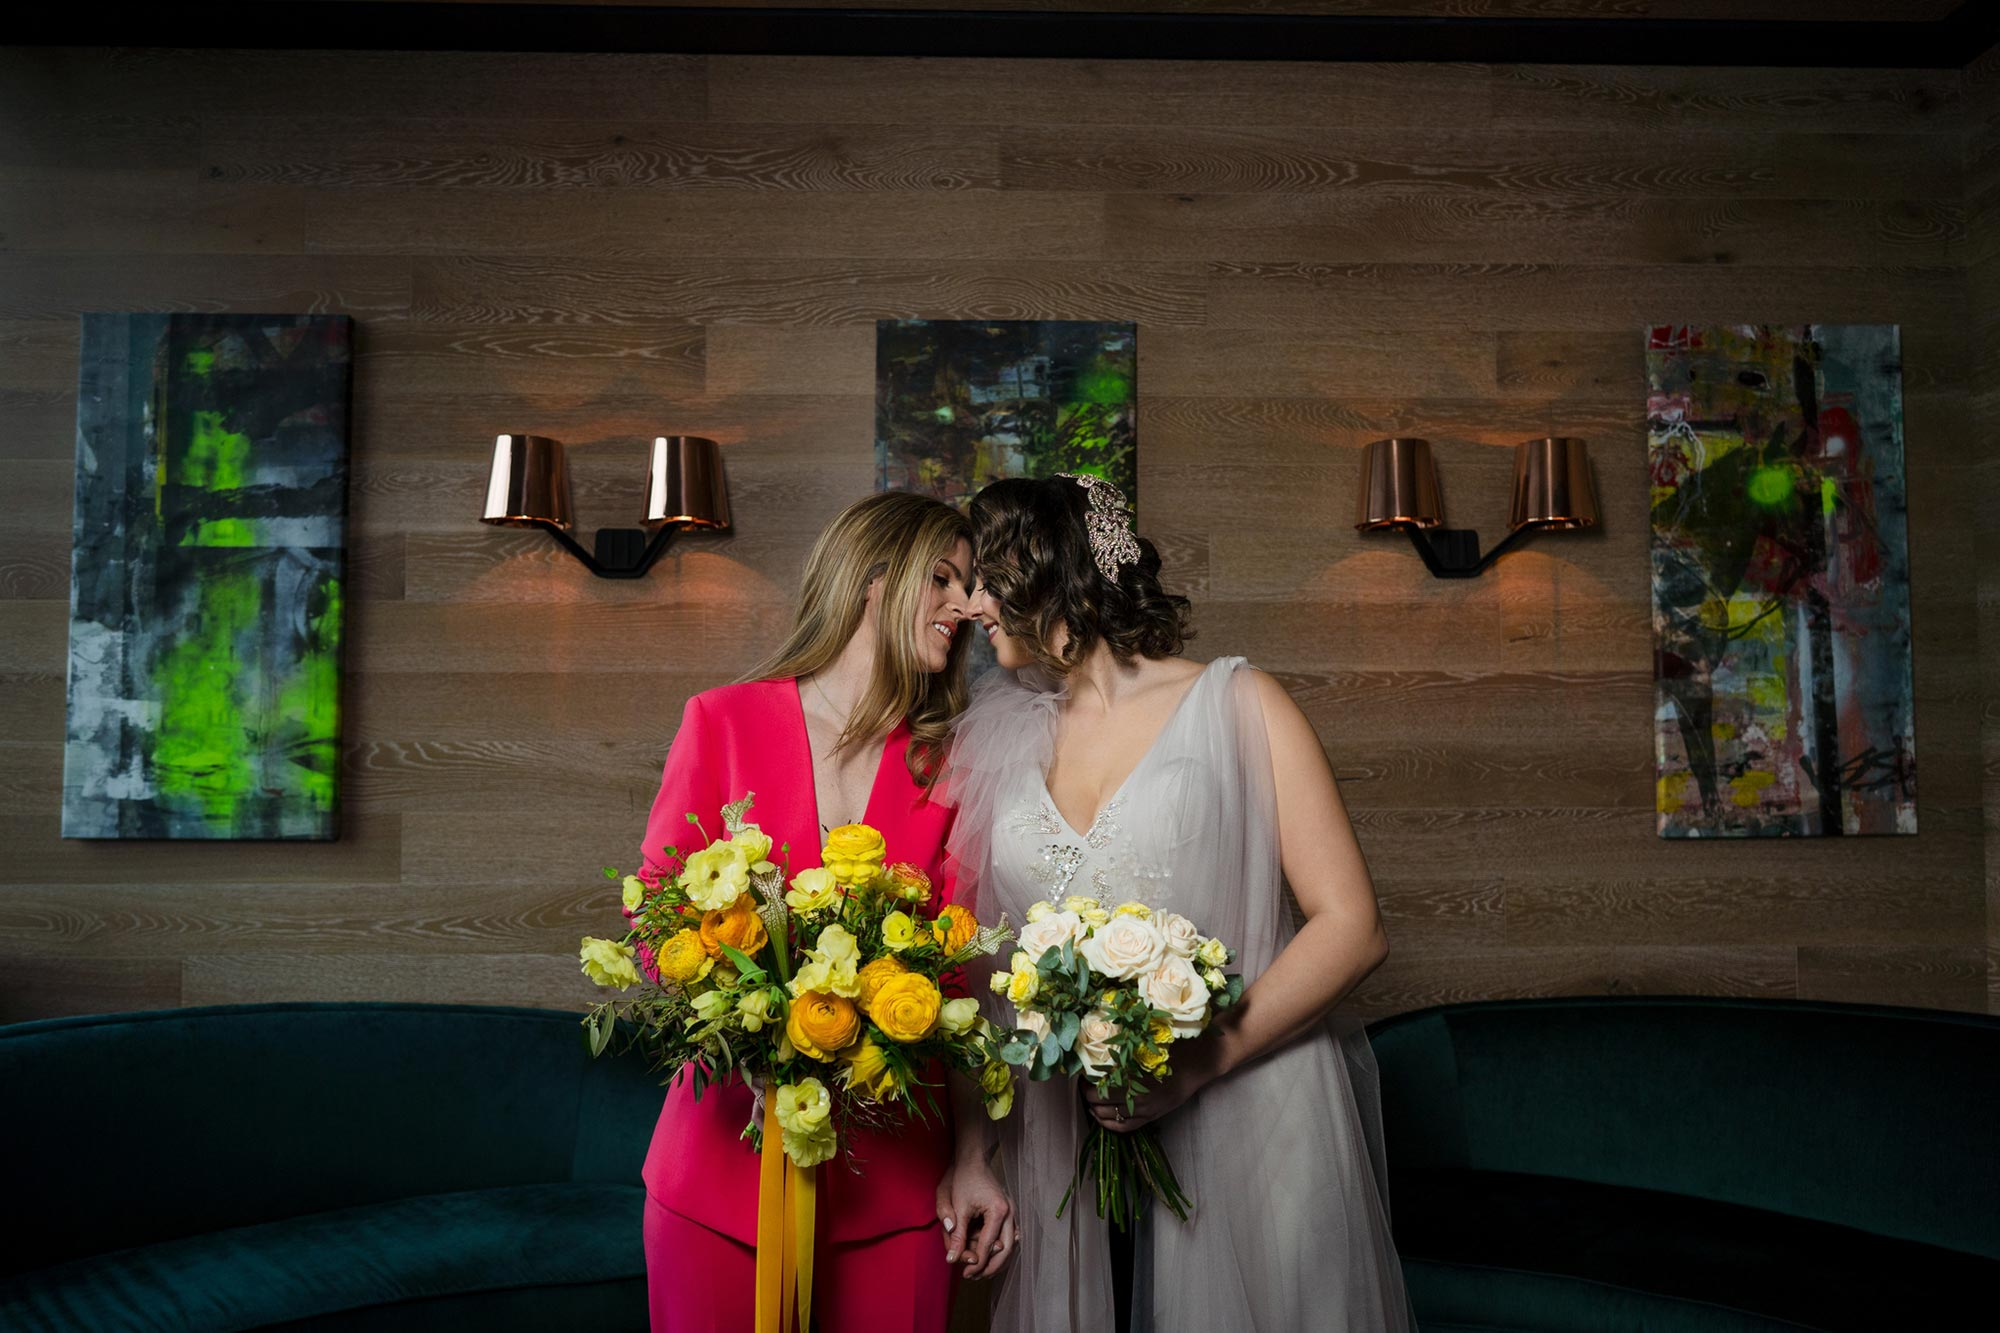 Bright Neon Wedding Inspiration at The Bowery Hotel NYC showing couple leaning in for kiss JC Lemon Photography